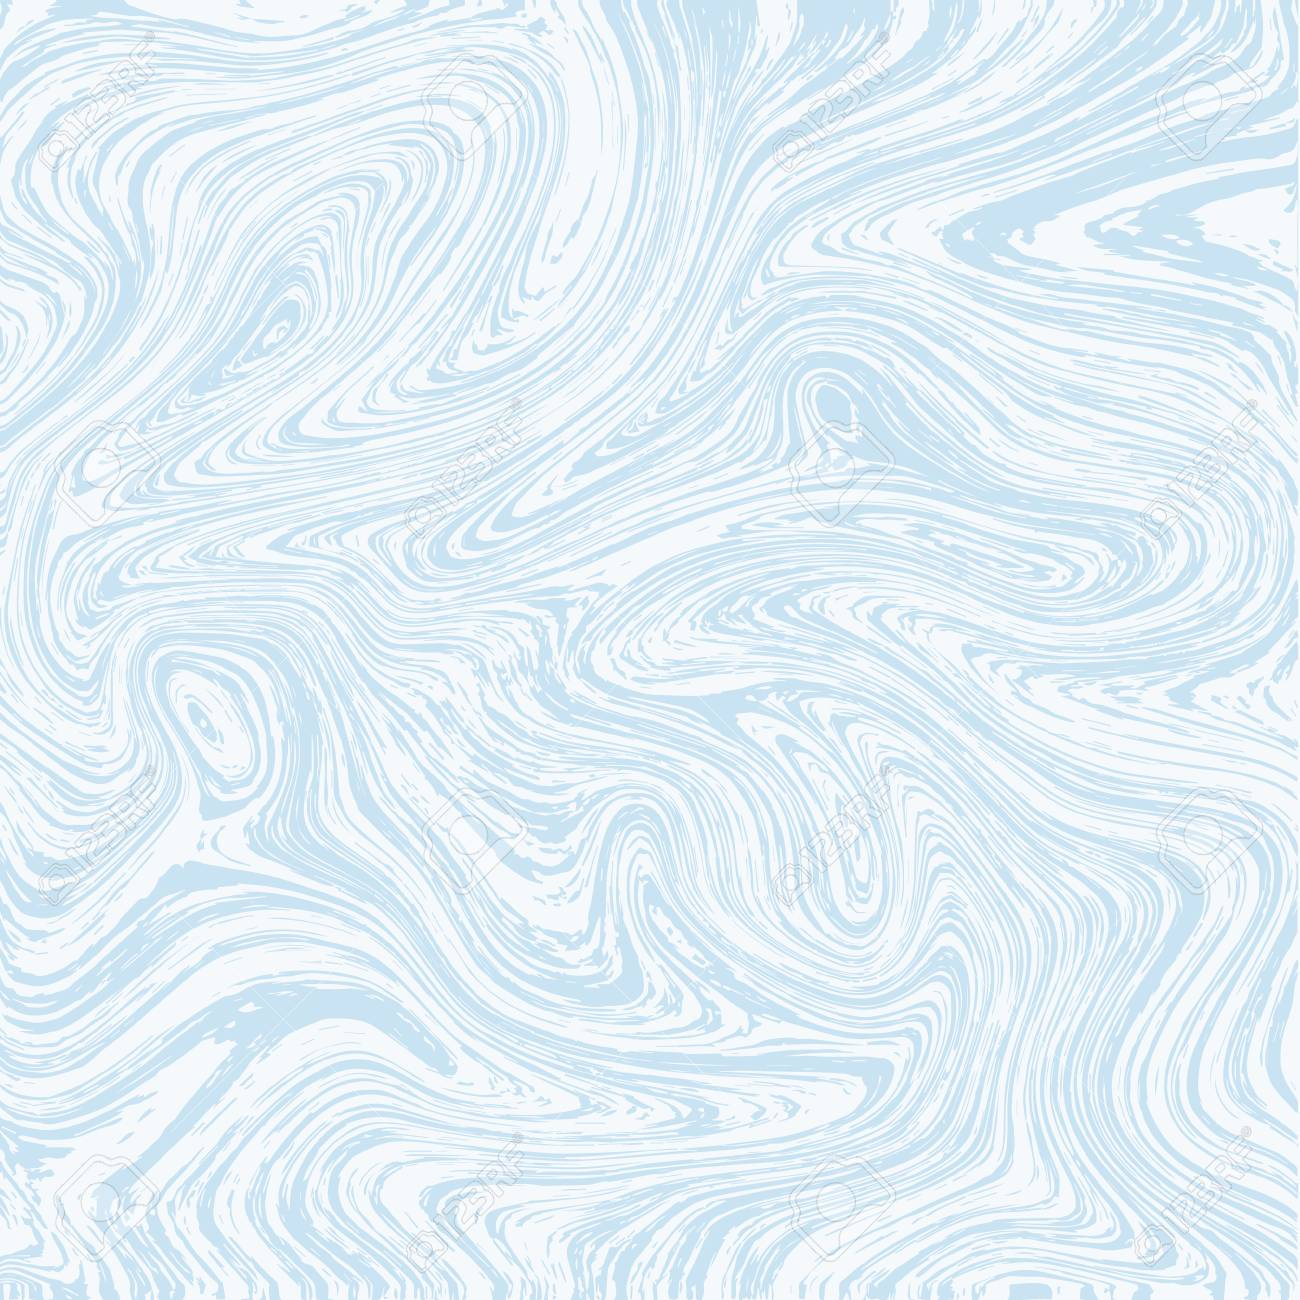 Light white and blue marble texture. Vector background, template, texture, wallpaper,